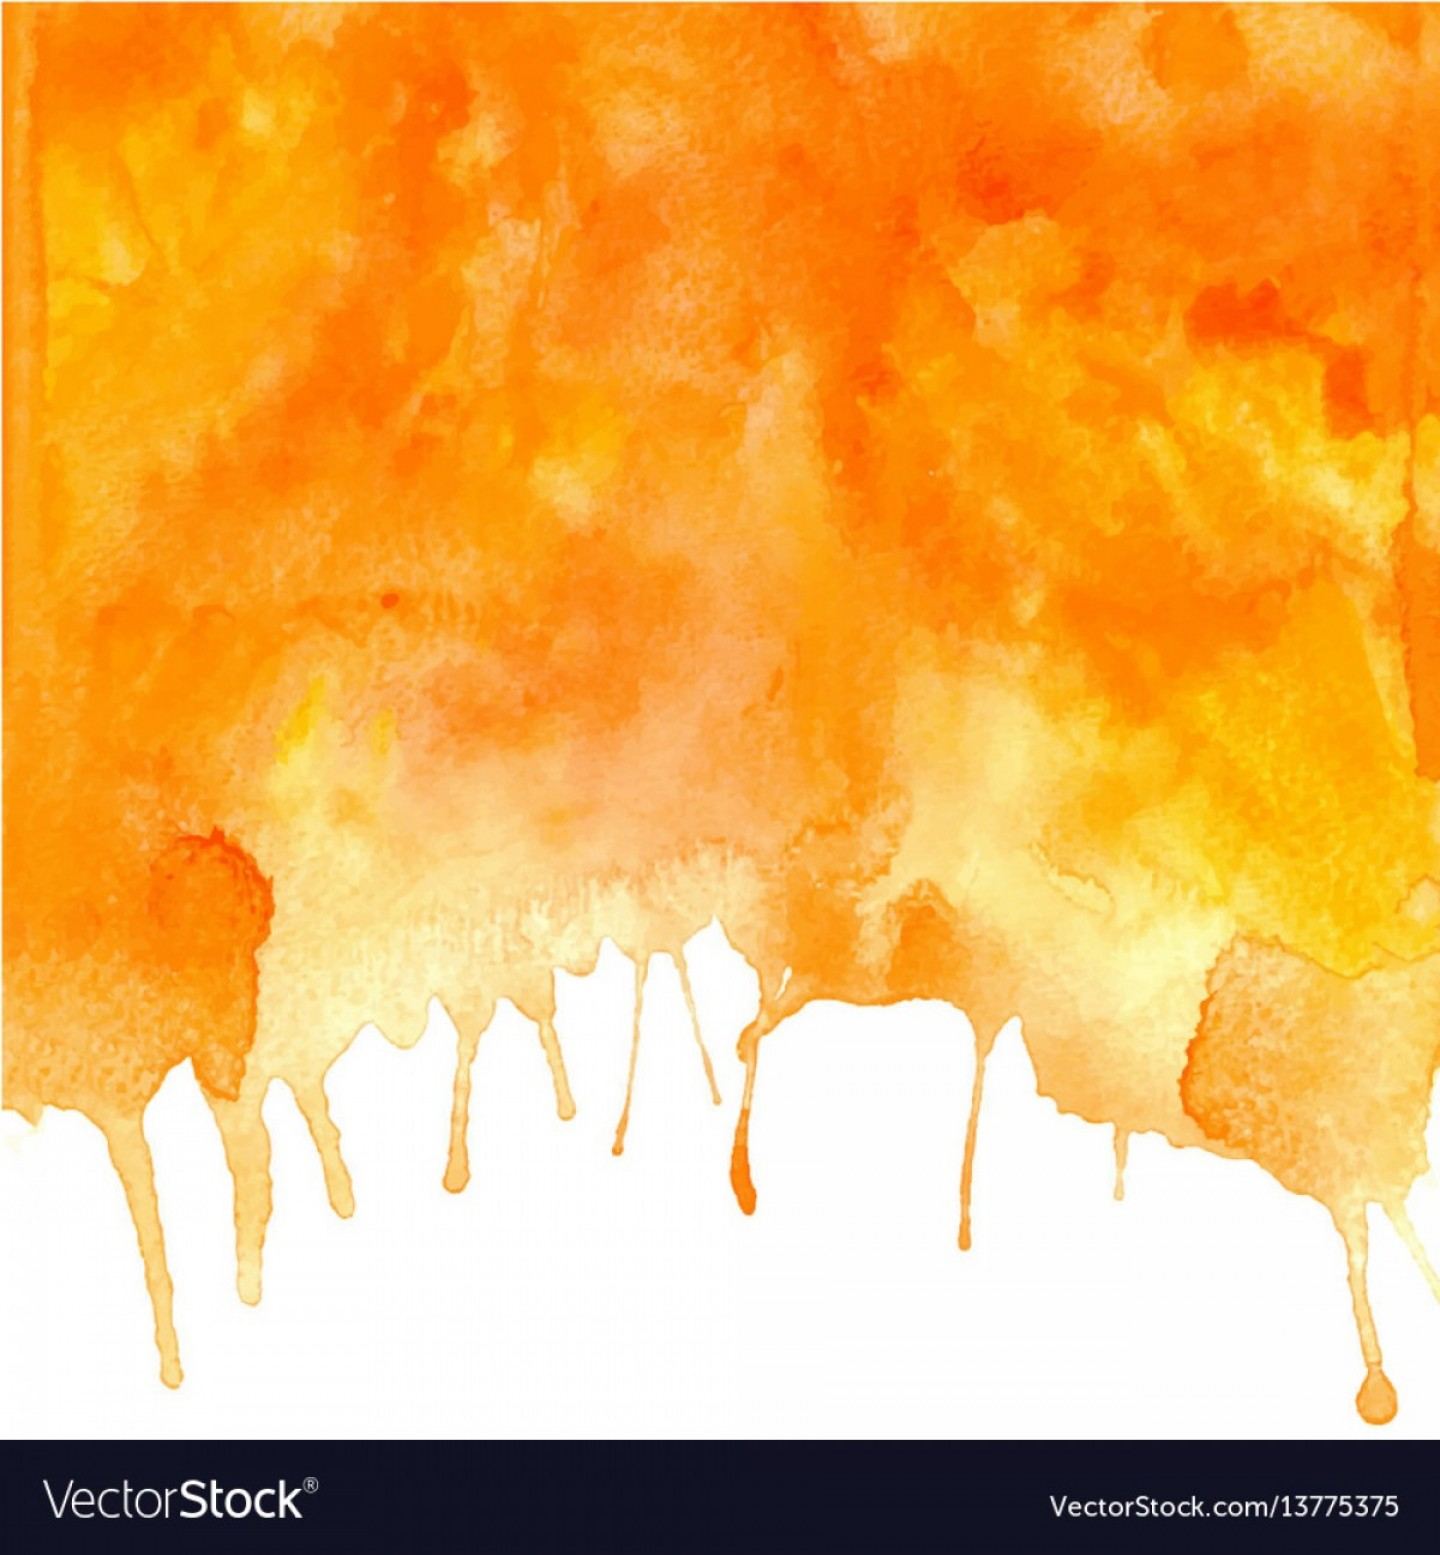 Orange Watercolor Vector Free: Orange Abstract Hand Drawn Watercolor Vector